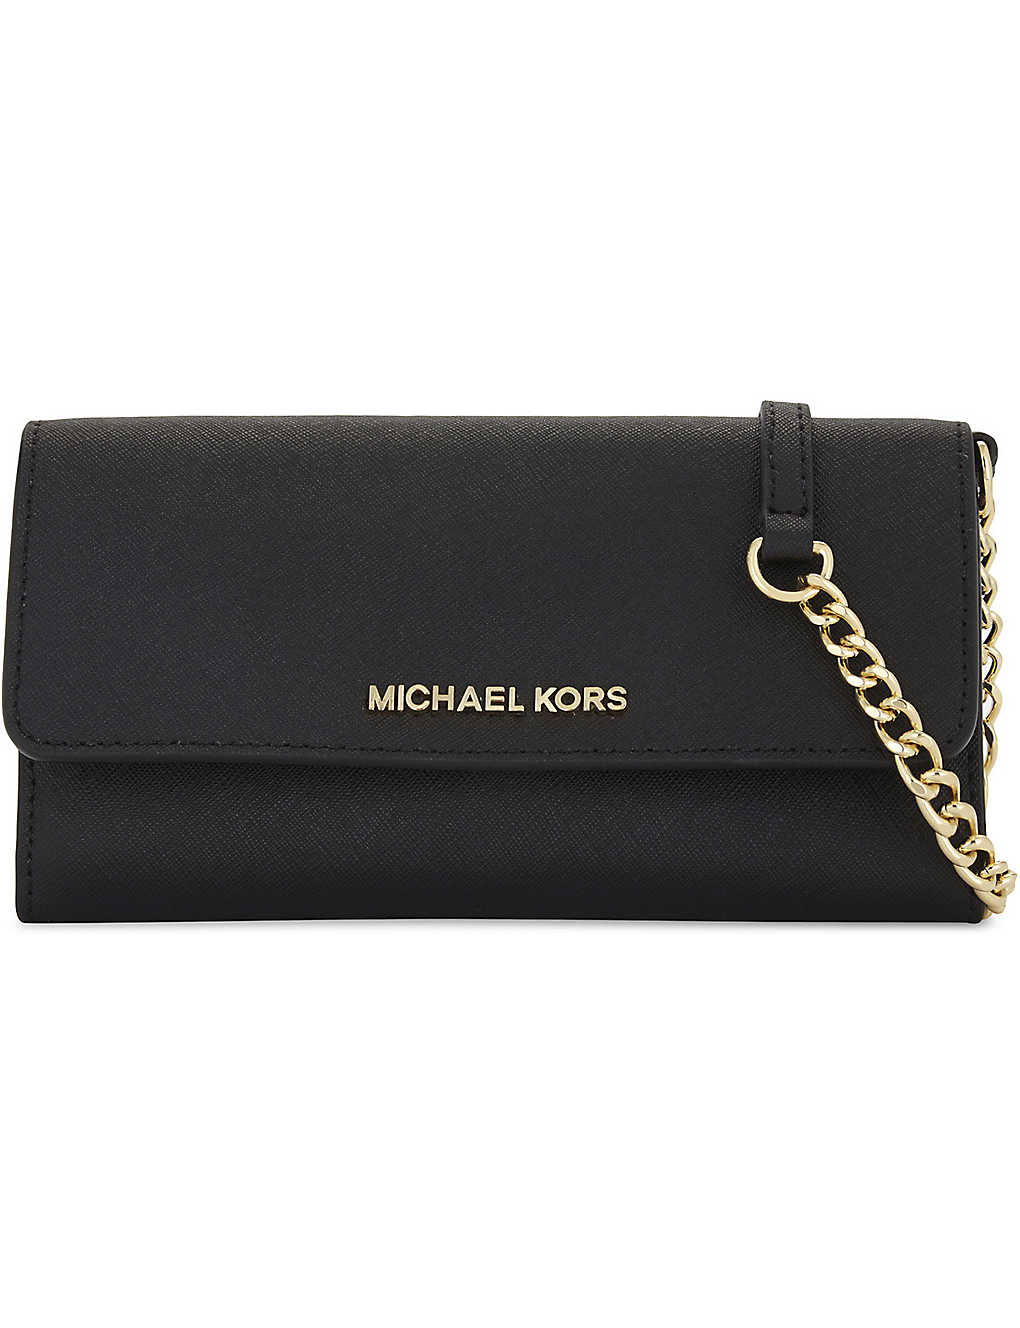 91e537617c90 MICHAEL MICHAEL KORS - Jet Set Travel wallet on a chain | Selfridges.com